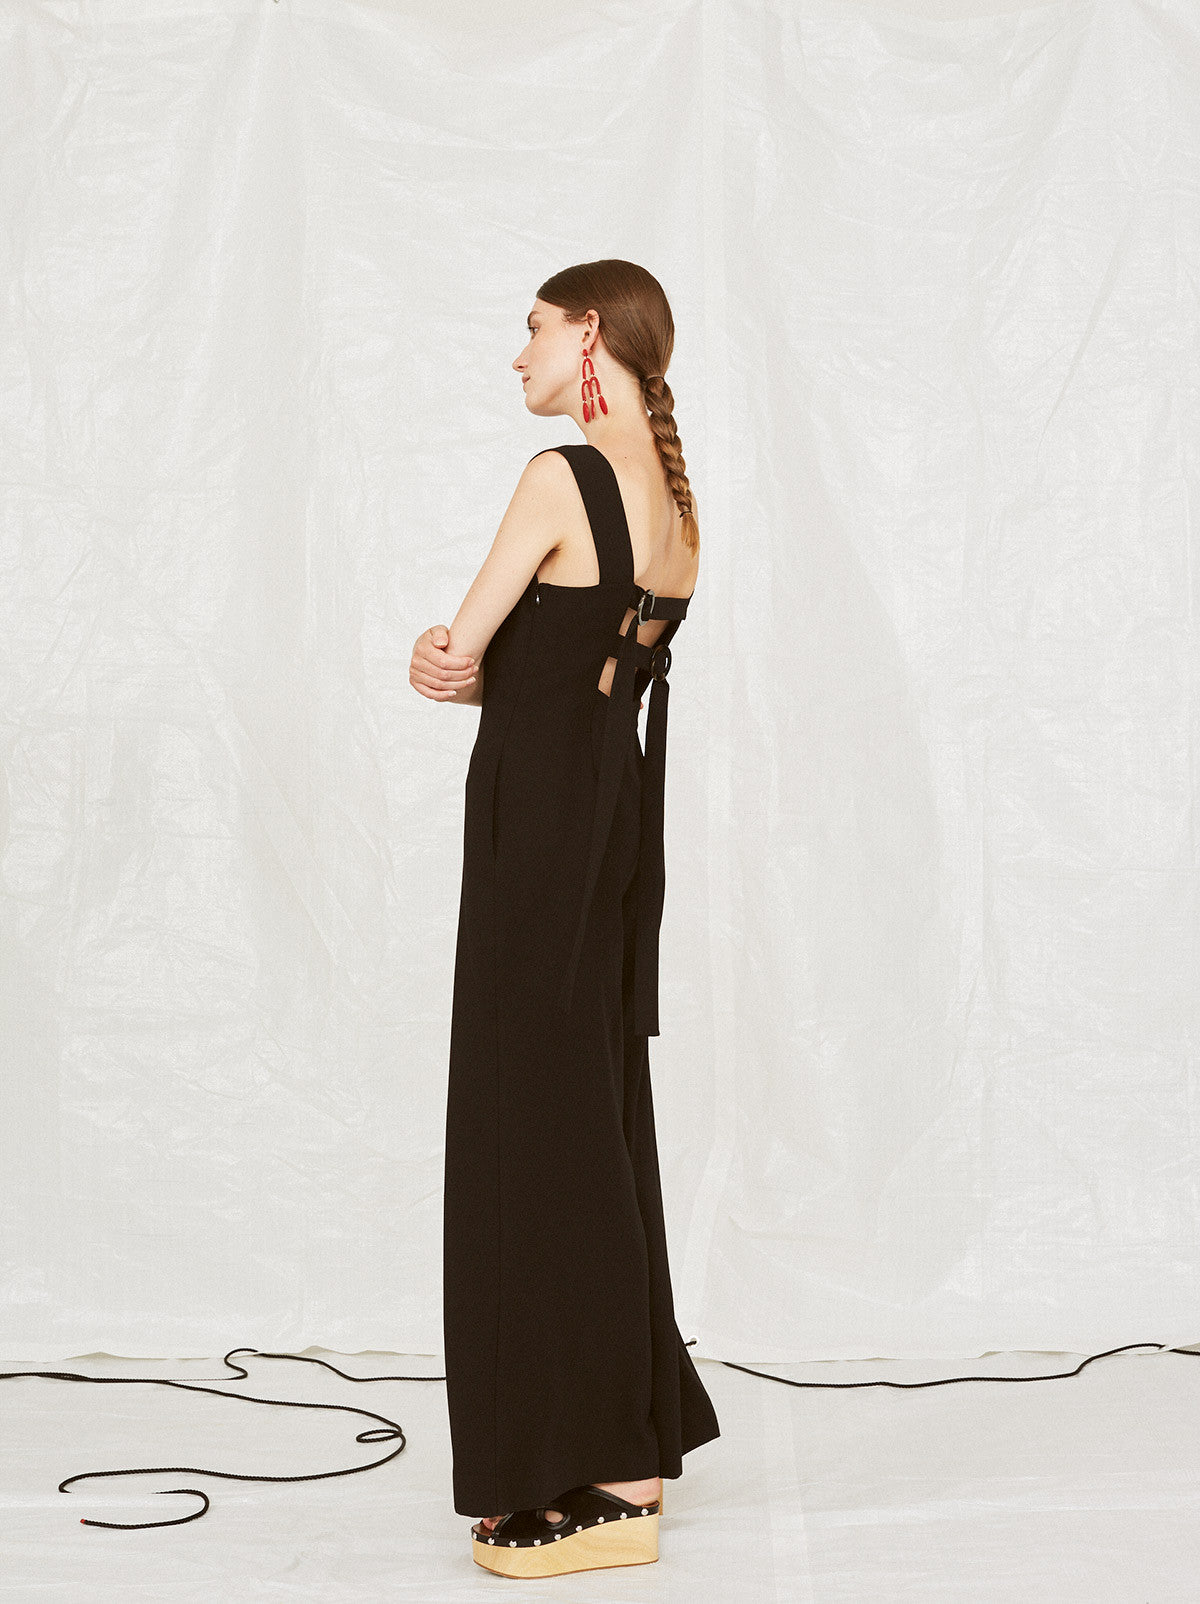 Peggy Buckle Back Black Wide Leg Jumpsuit by KITRI Studio